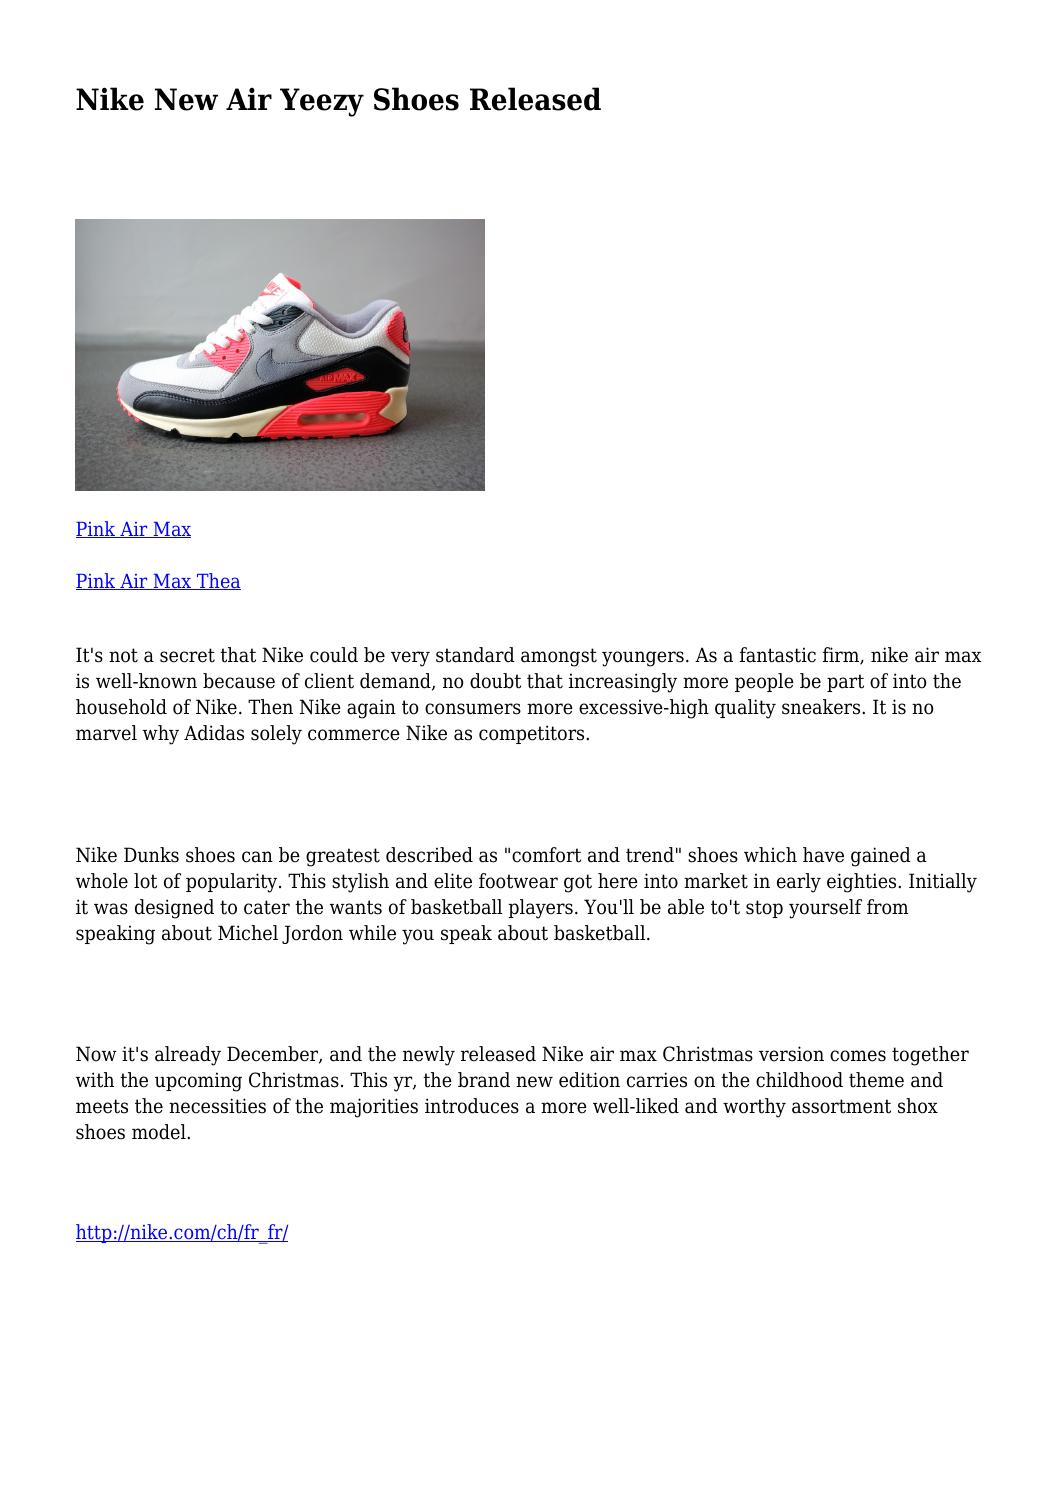 6000c89e1d1be Nike New Air Yeezy Shoes Released by psychotichardwa27 - issuu